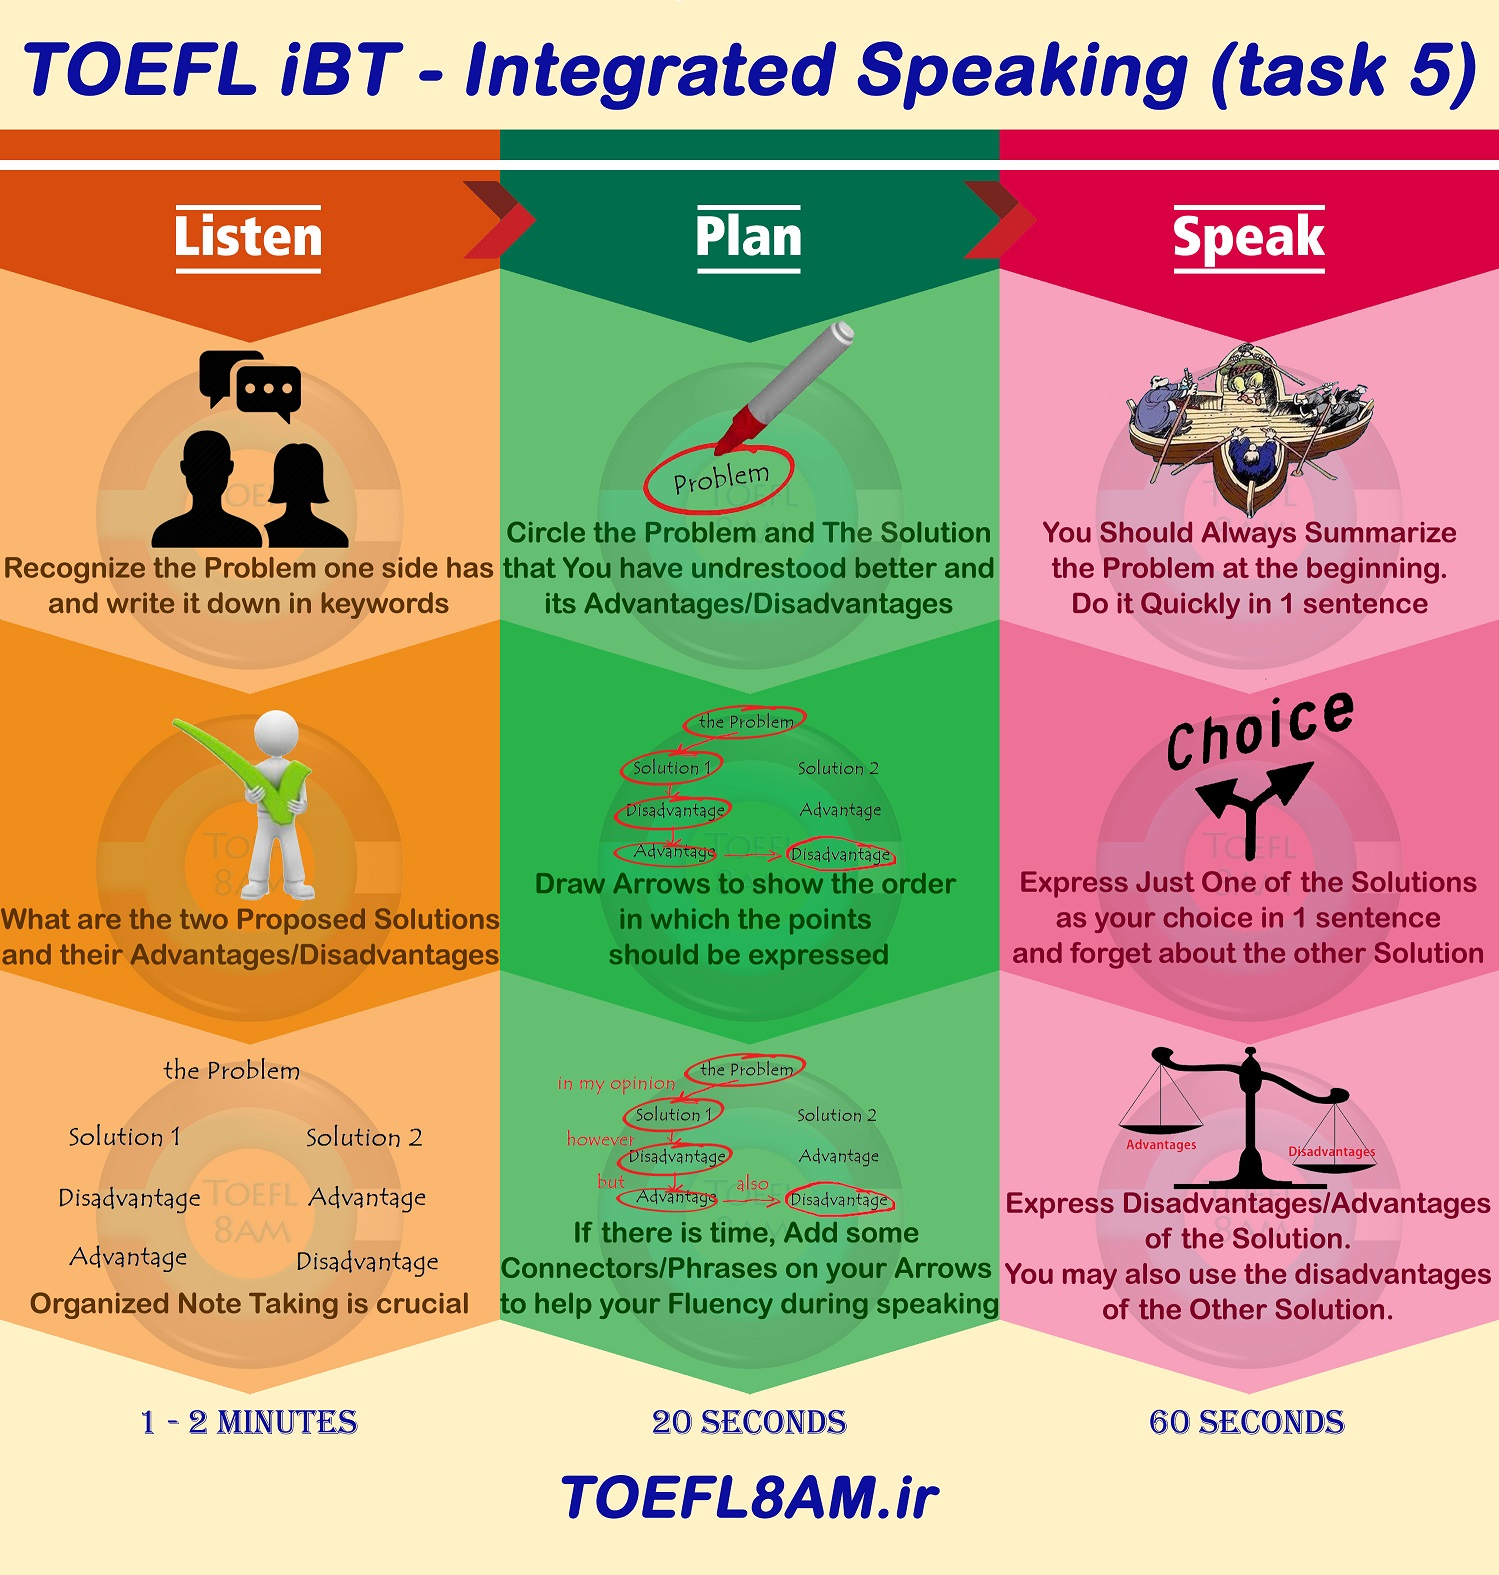 success in TOEFL iBT Speaking task 5